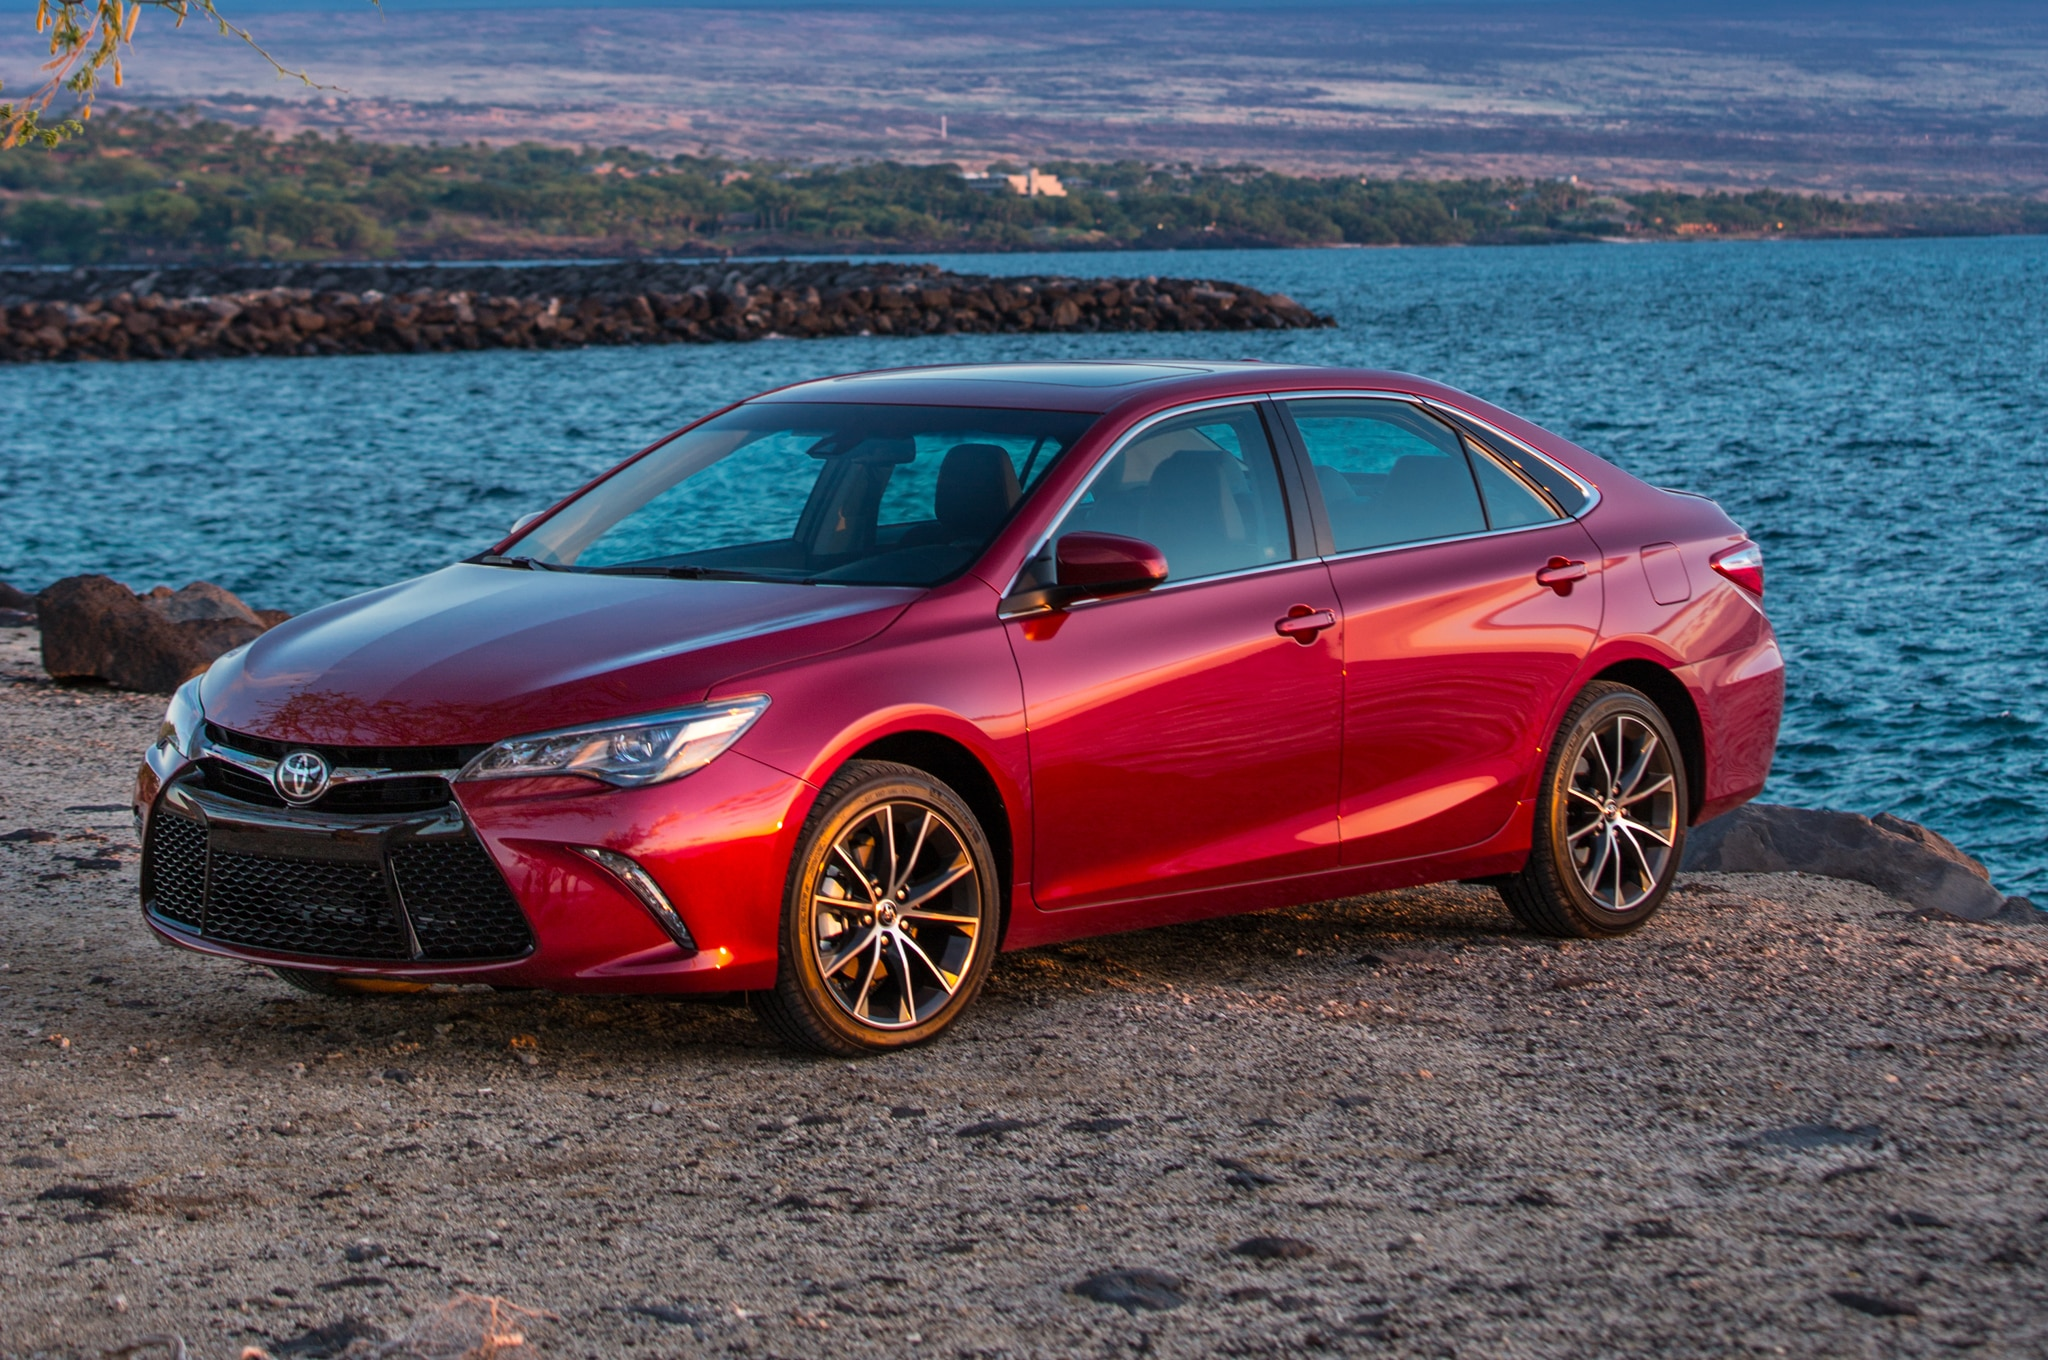 2015 Toyota Camry XSE front three quarters 10 report next toyota camry to receive turbo four cylinder?  at alyssarenee.co